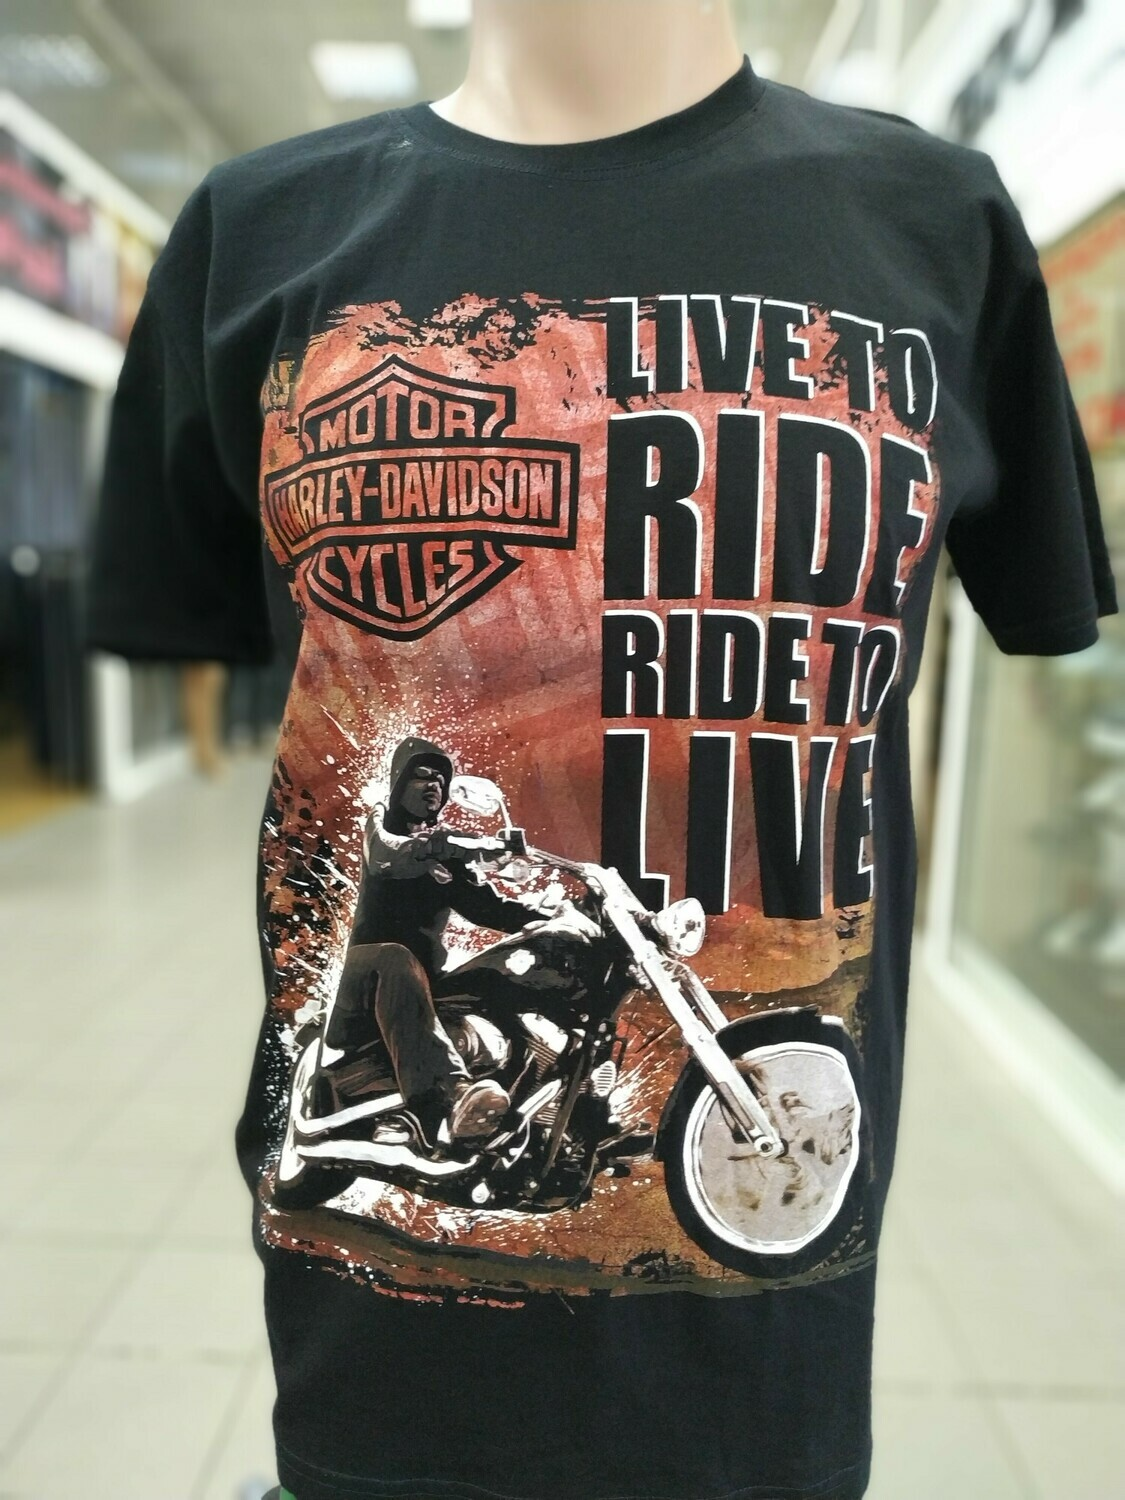 ФУТБОЛКА LIVE TO RIDE HARLEY-DASVIDSON CYCLES чёрная